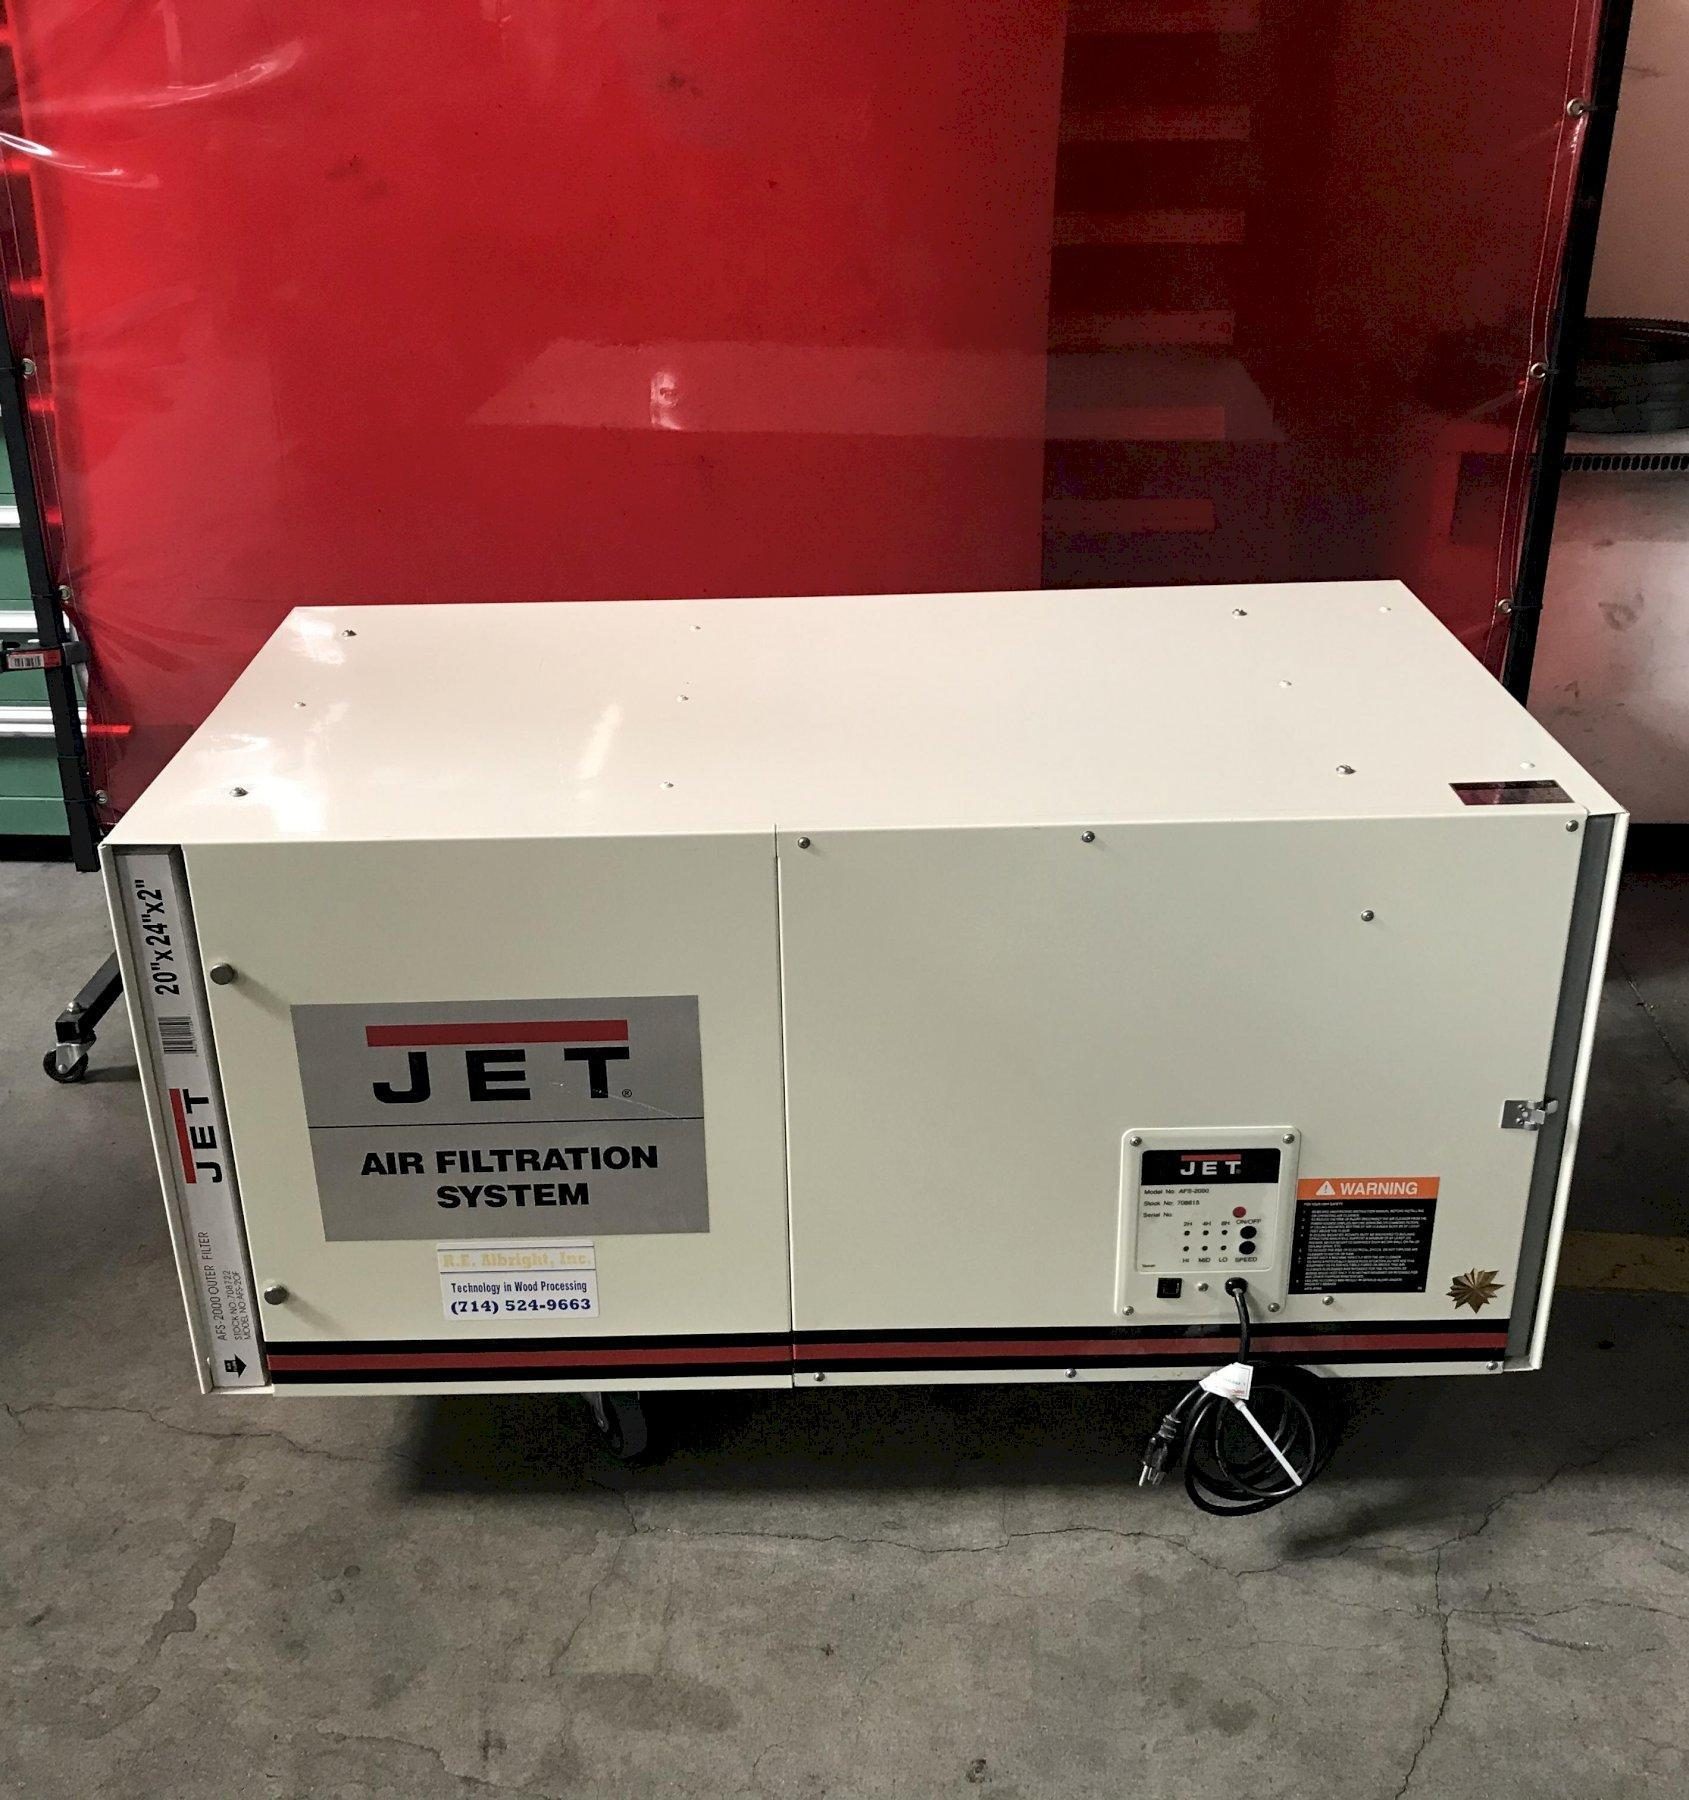 Jet AFS-2000 Air Filtration System 2011 with: 1700 CFM Air Filtration, 3-Speed, Remote Control.